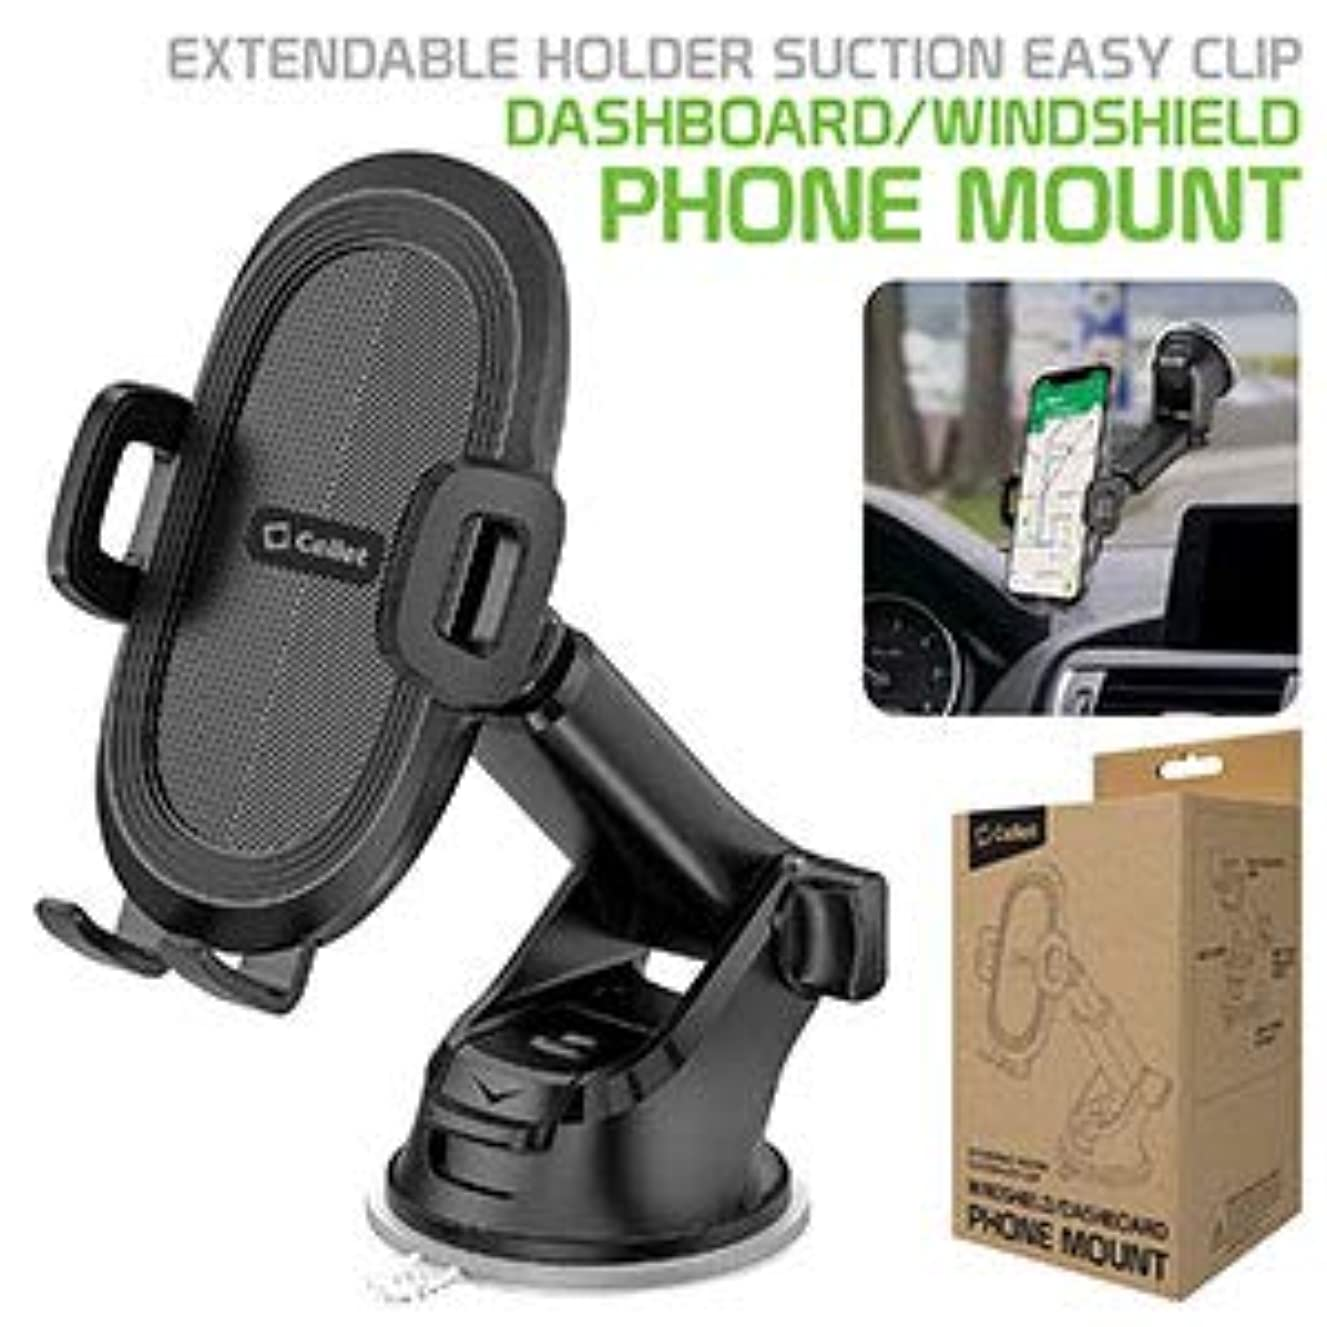 Windshield/Dashboard Phone Holder Mount with Reusable Suction Pad, Lock Lever, 360 Degree Rotating Cradle, Folding and Extendable Arm Compatible w/iPhone 8 Cable, Random Colors